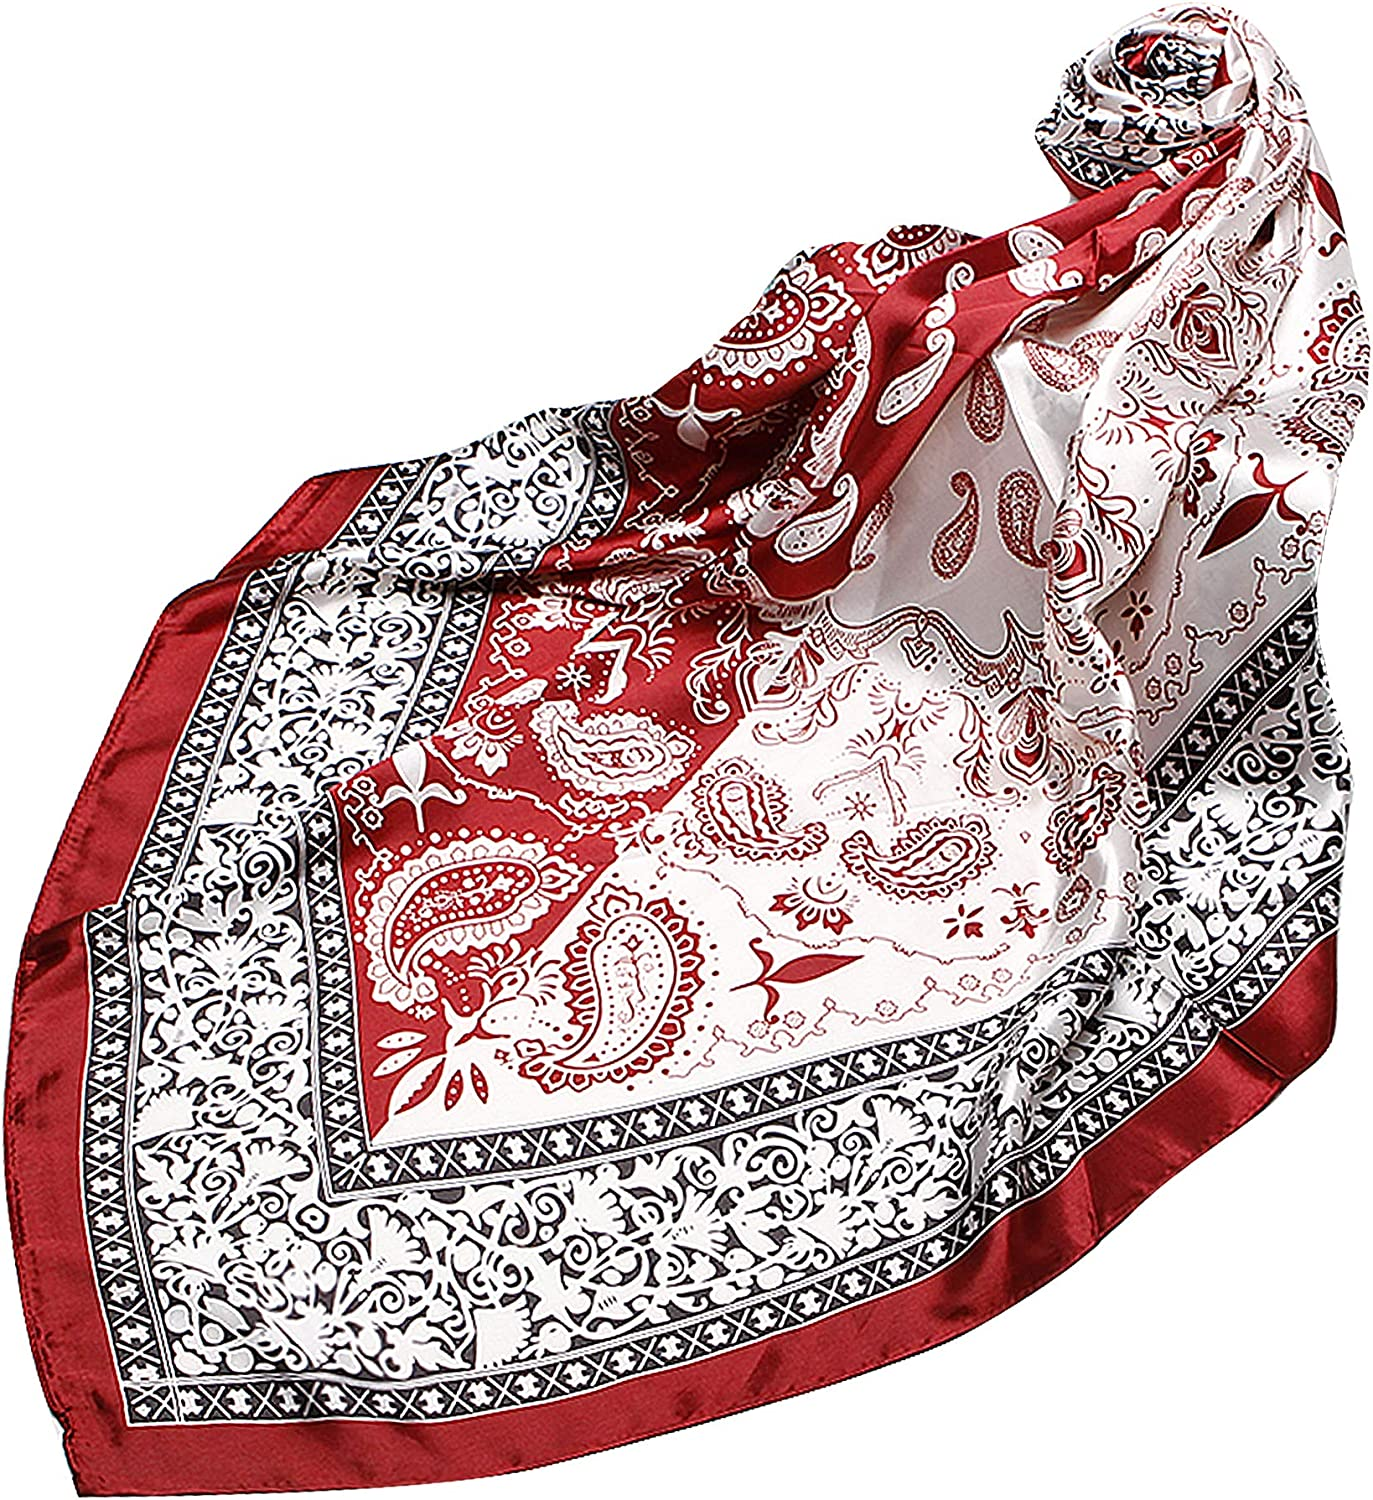 NOVMAY Women's Fashion Scarves Silk Satin Square Head Scarf Floral Print Headscarf for Women 35 X 35 Inches